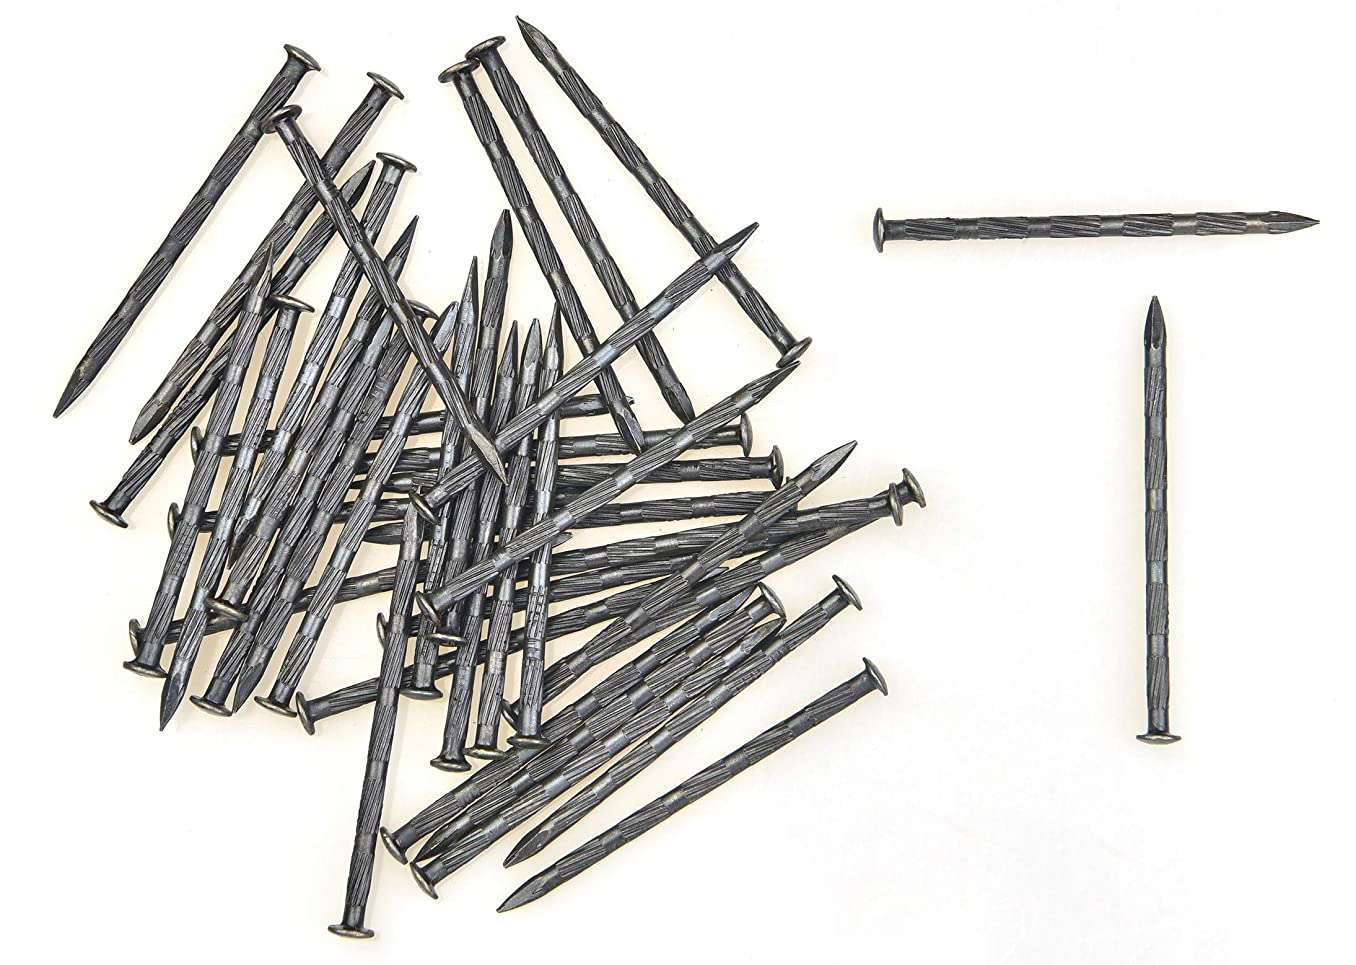 5x100 mm - 3.9 inch Hardened High carbon steel nails for masonry and metal plates 100 pcs. (3.10 lb.)